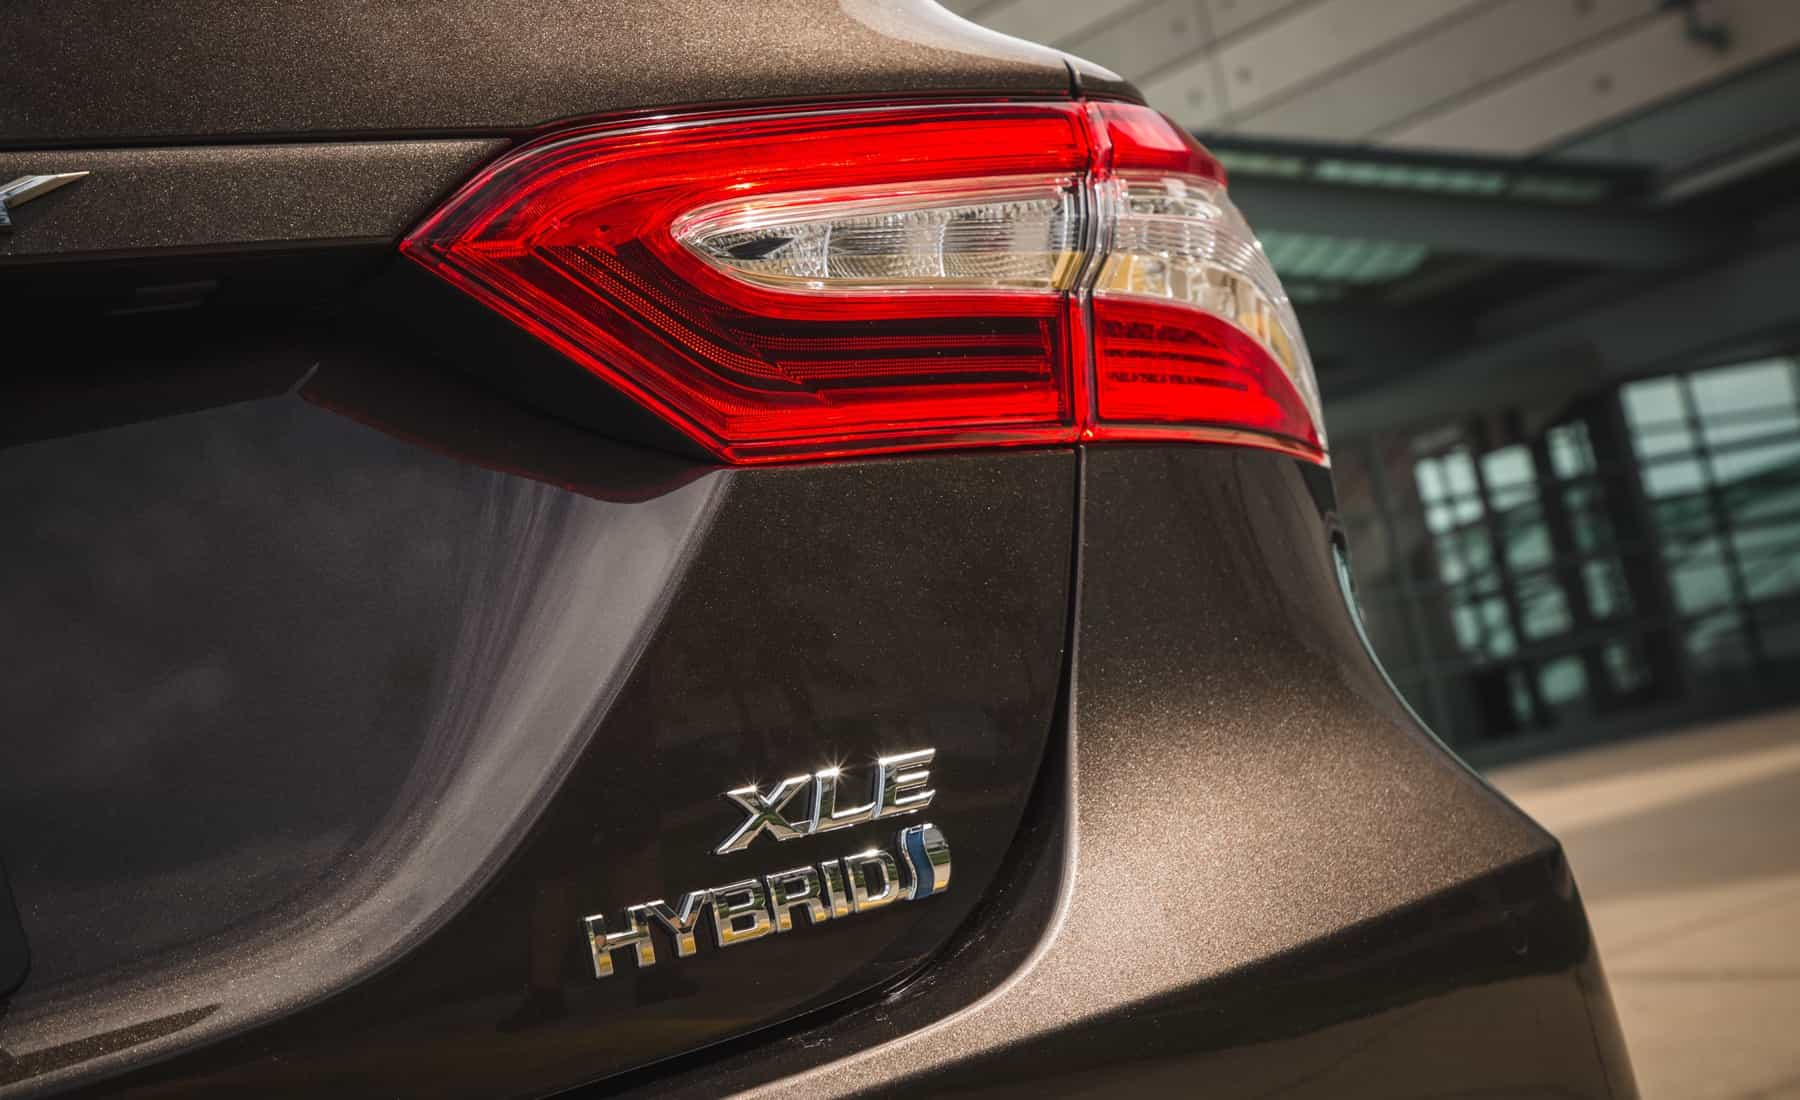 2018 Toyota Camry Hybrid XLE Exterior View Rear Emblem (Photo 12 of 41)